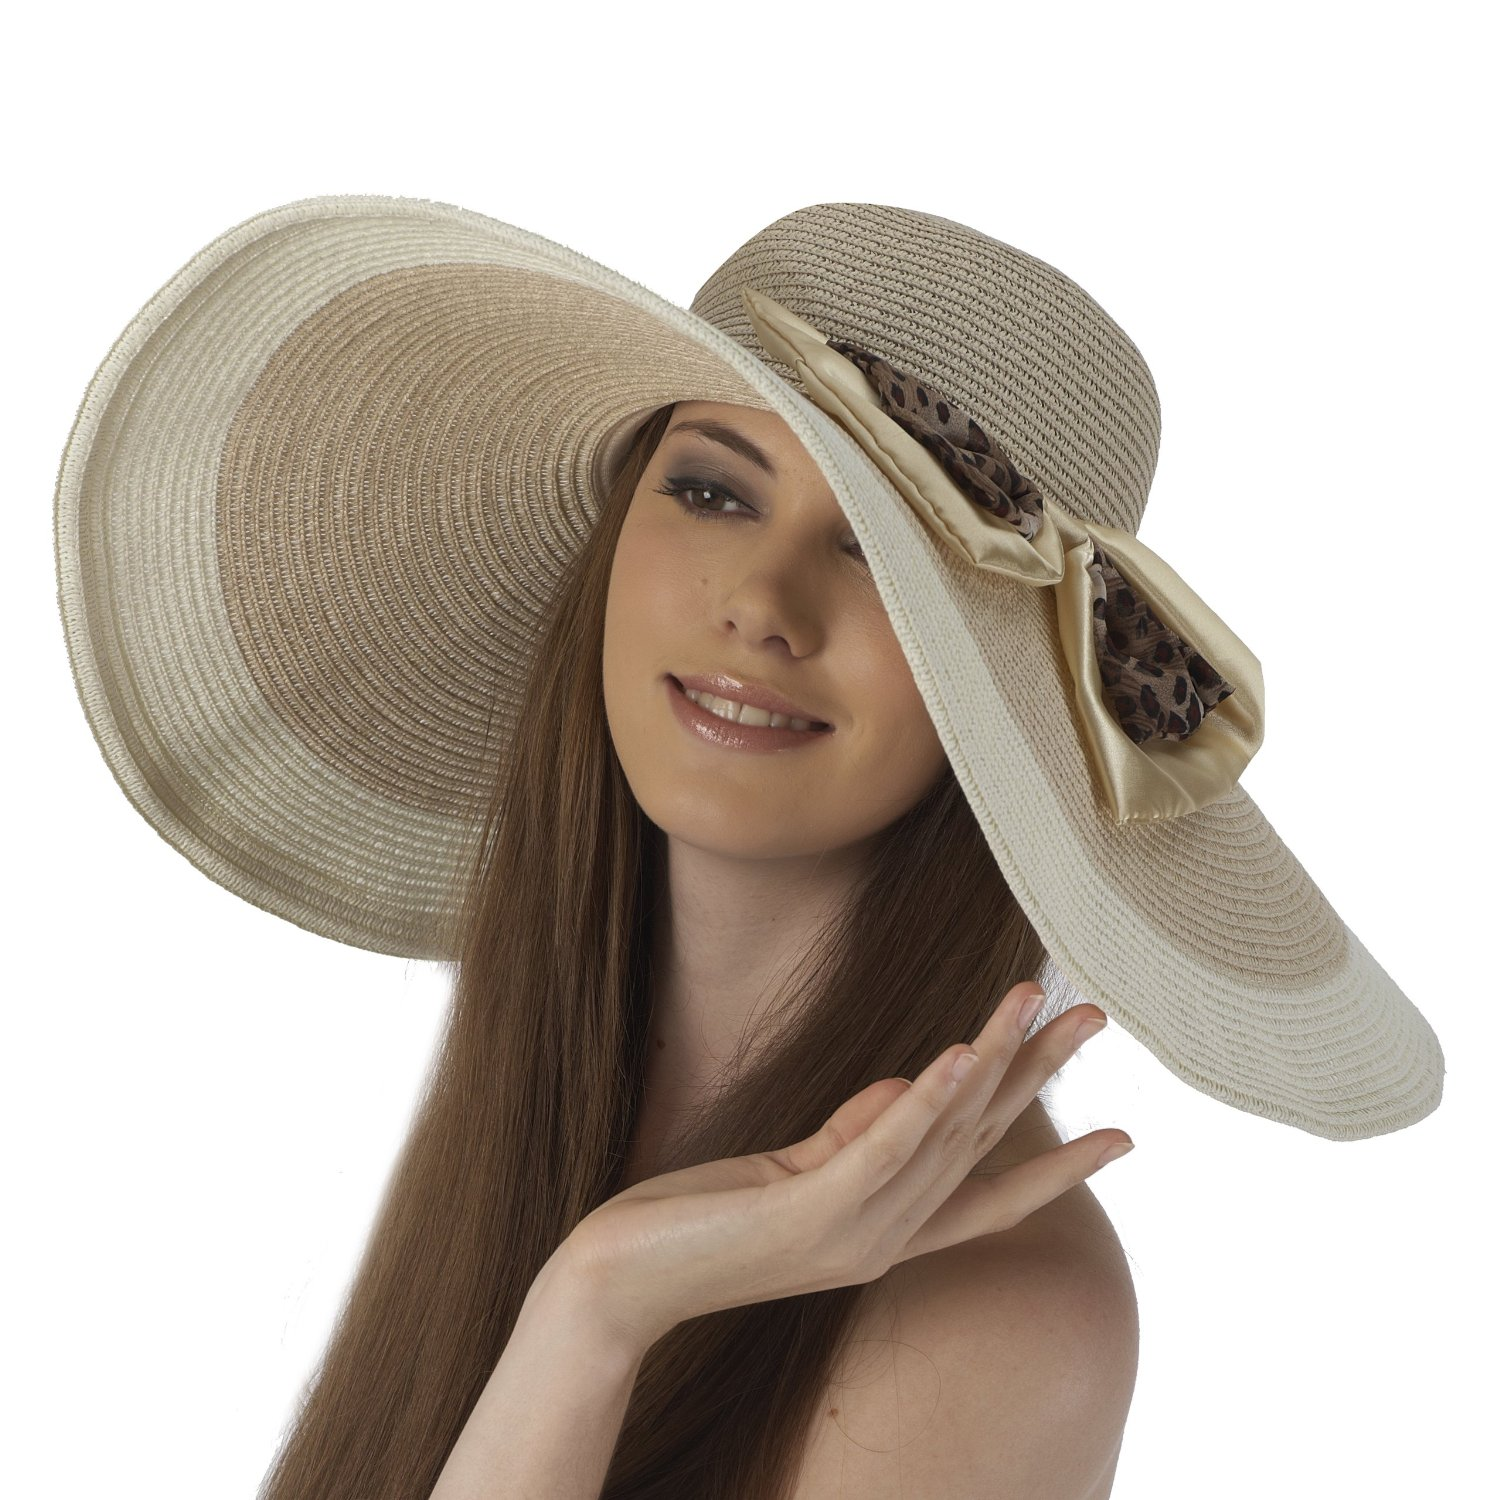 Shop for extra extra large hats for big heads at Hats In The Bell Fry. Get great deals on brim porkpie hat, fedora hats, and many more. Buy now! Women's Hats. Style. Big Brim Hats Special Occasion Cloche Hats Fedora Hats Berets, Knits & Caps.